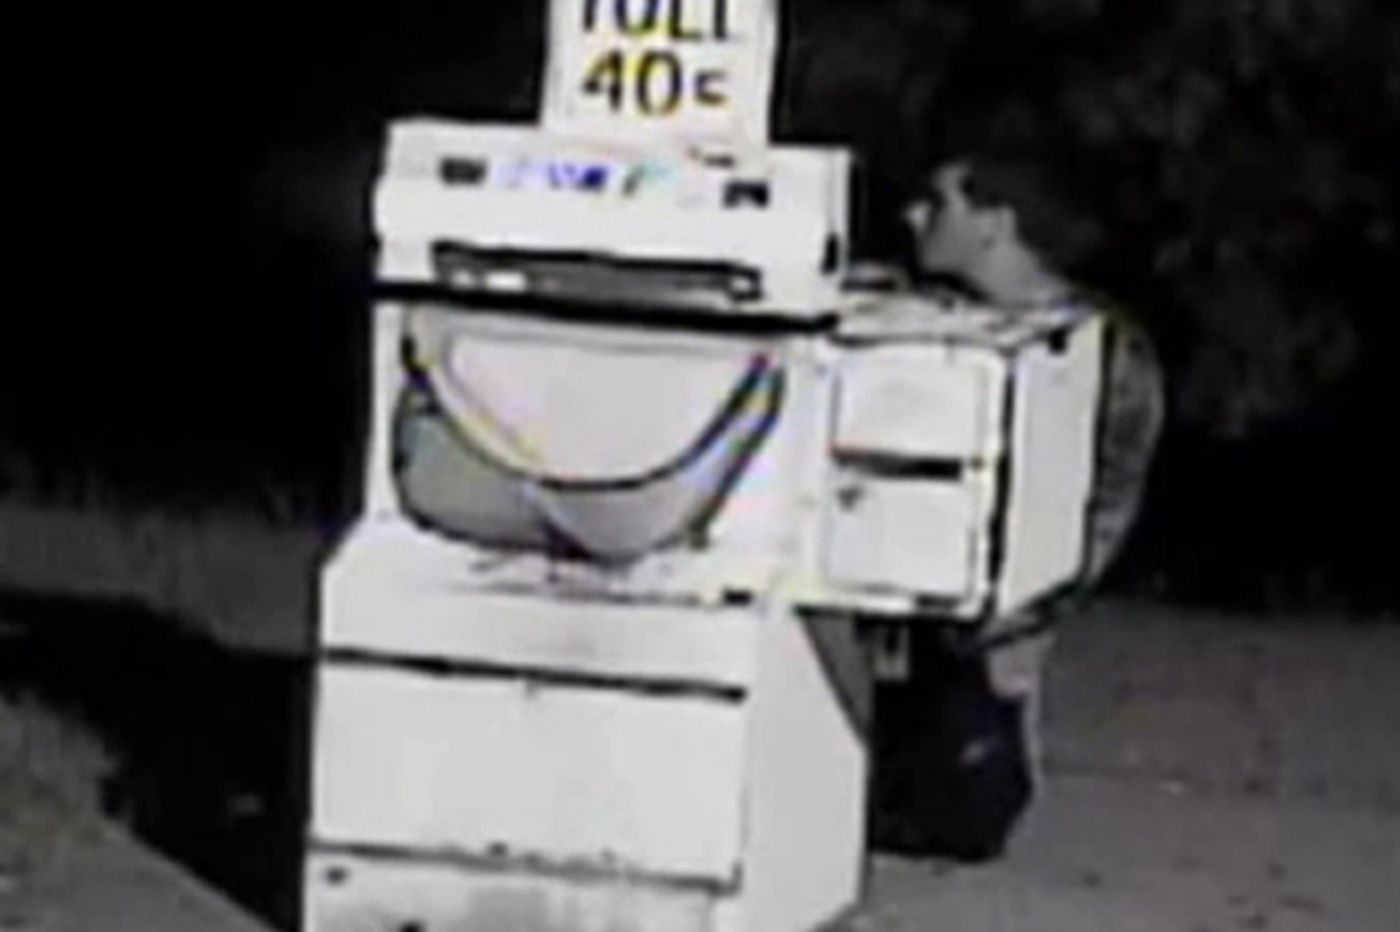 Dumb criminal breaks into Atlantic City Expressway toll machine in full view of camera